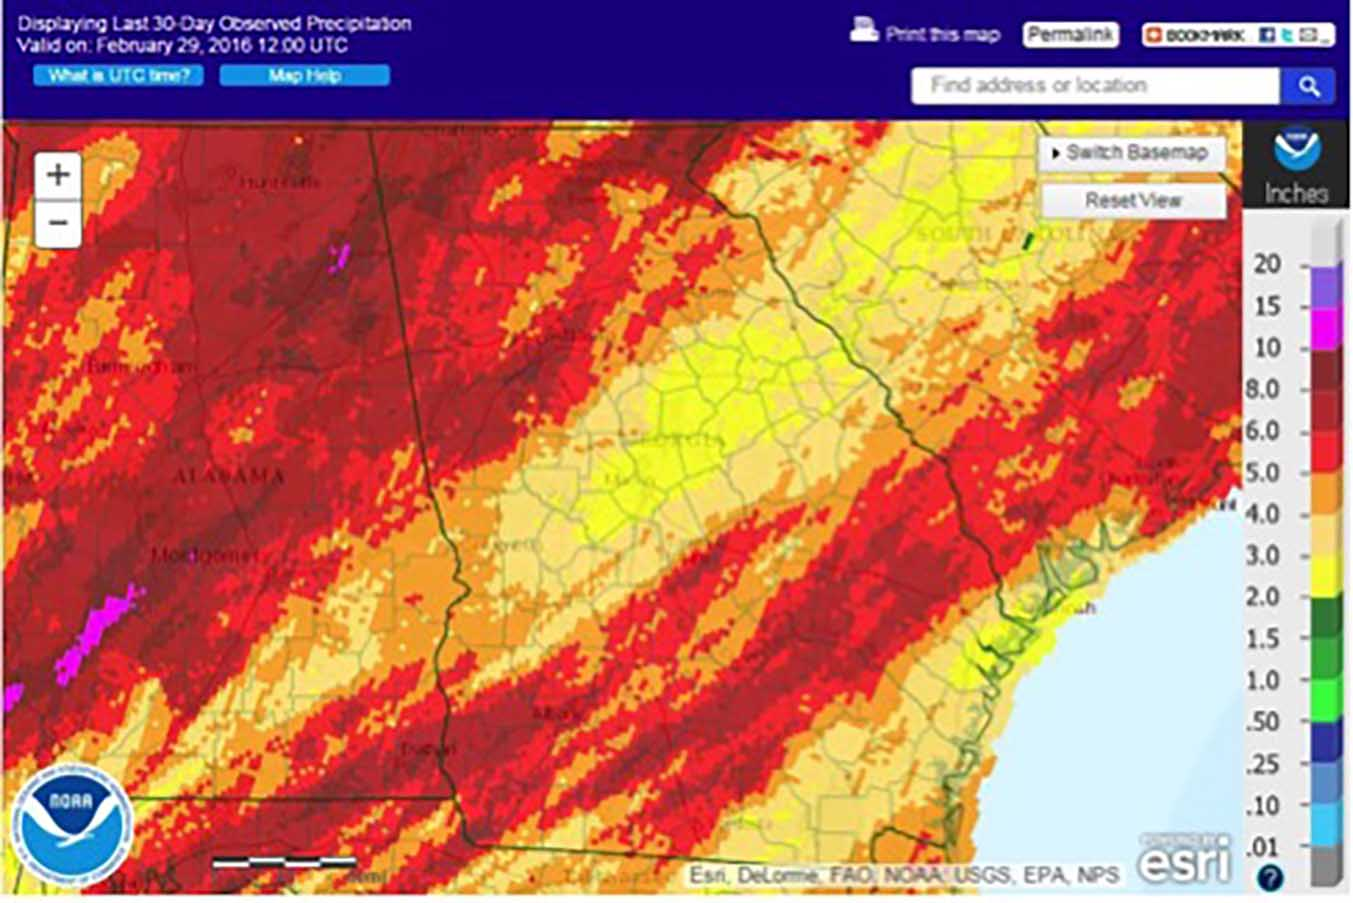 Over the course of February, swaths of northwest and southeast Georgia received as much as three or four inches more rainfall than normal, leaving some farm fields that have reached the planting milestone of 55 degrees Fahrenheit too wet to plant.